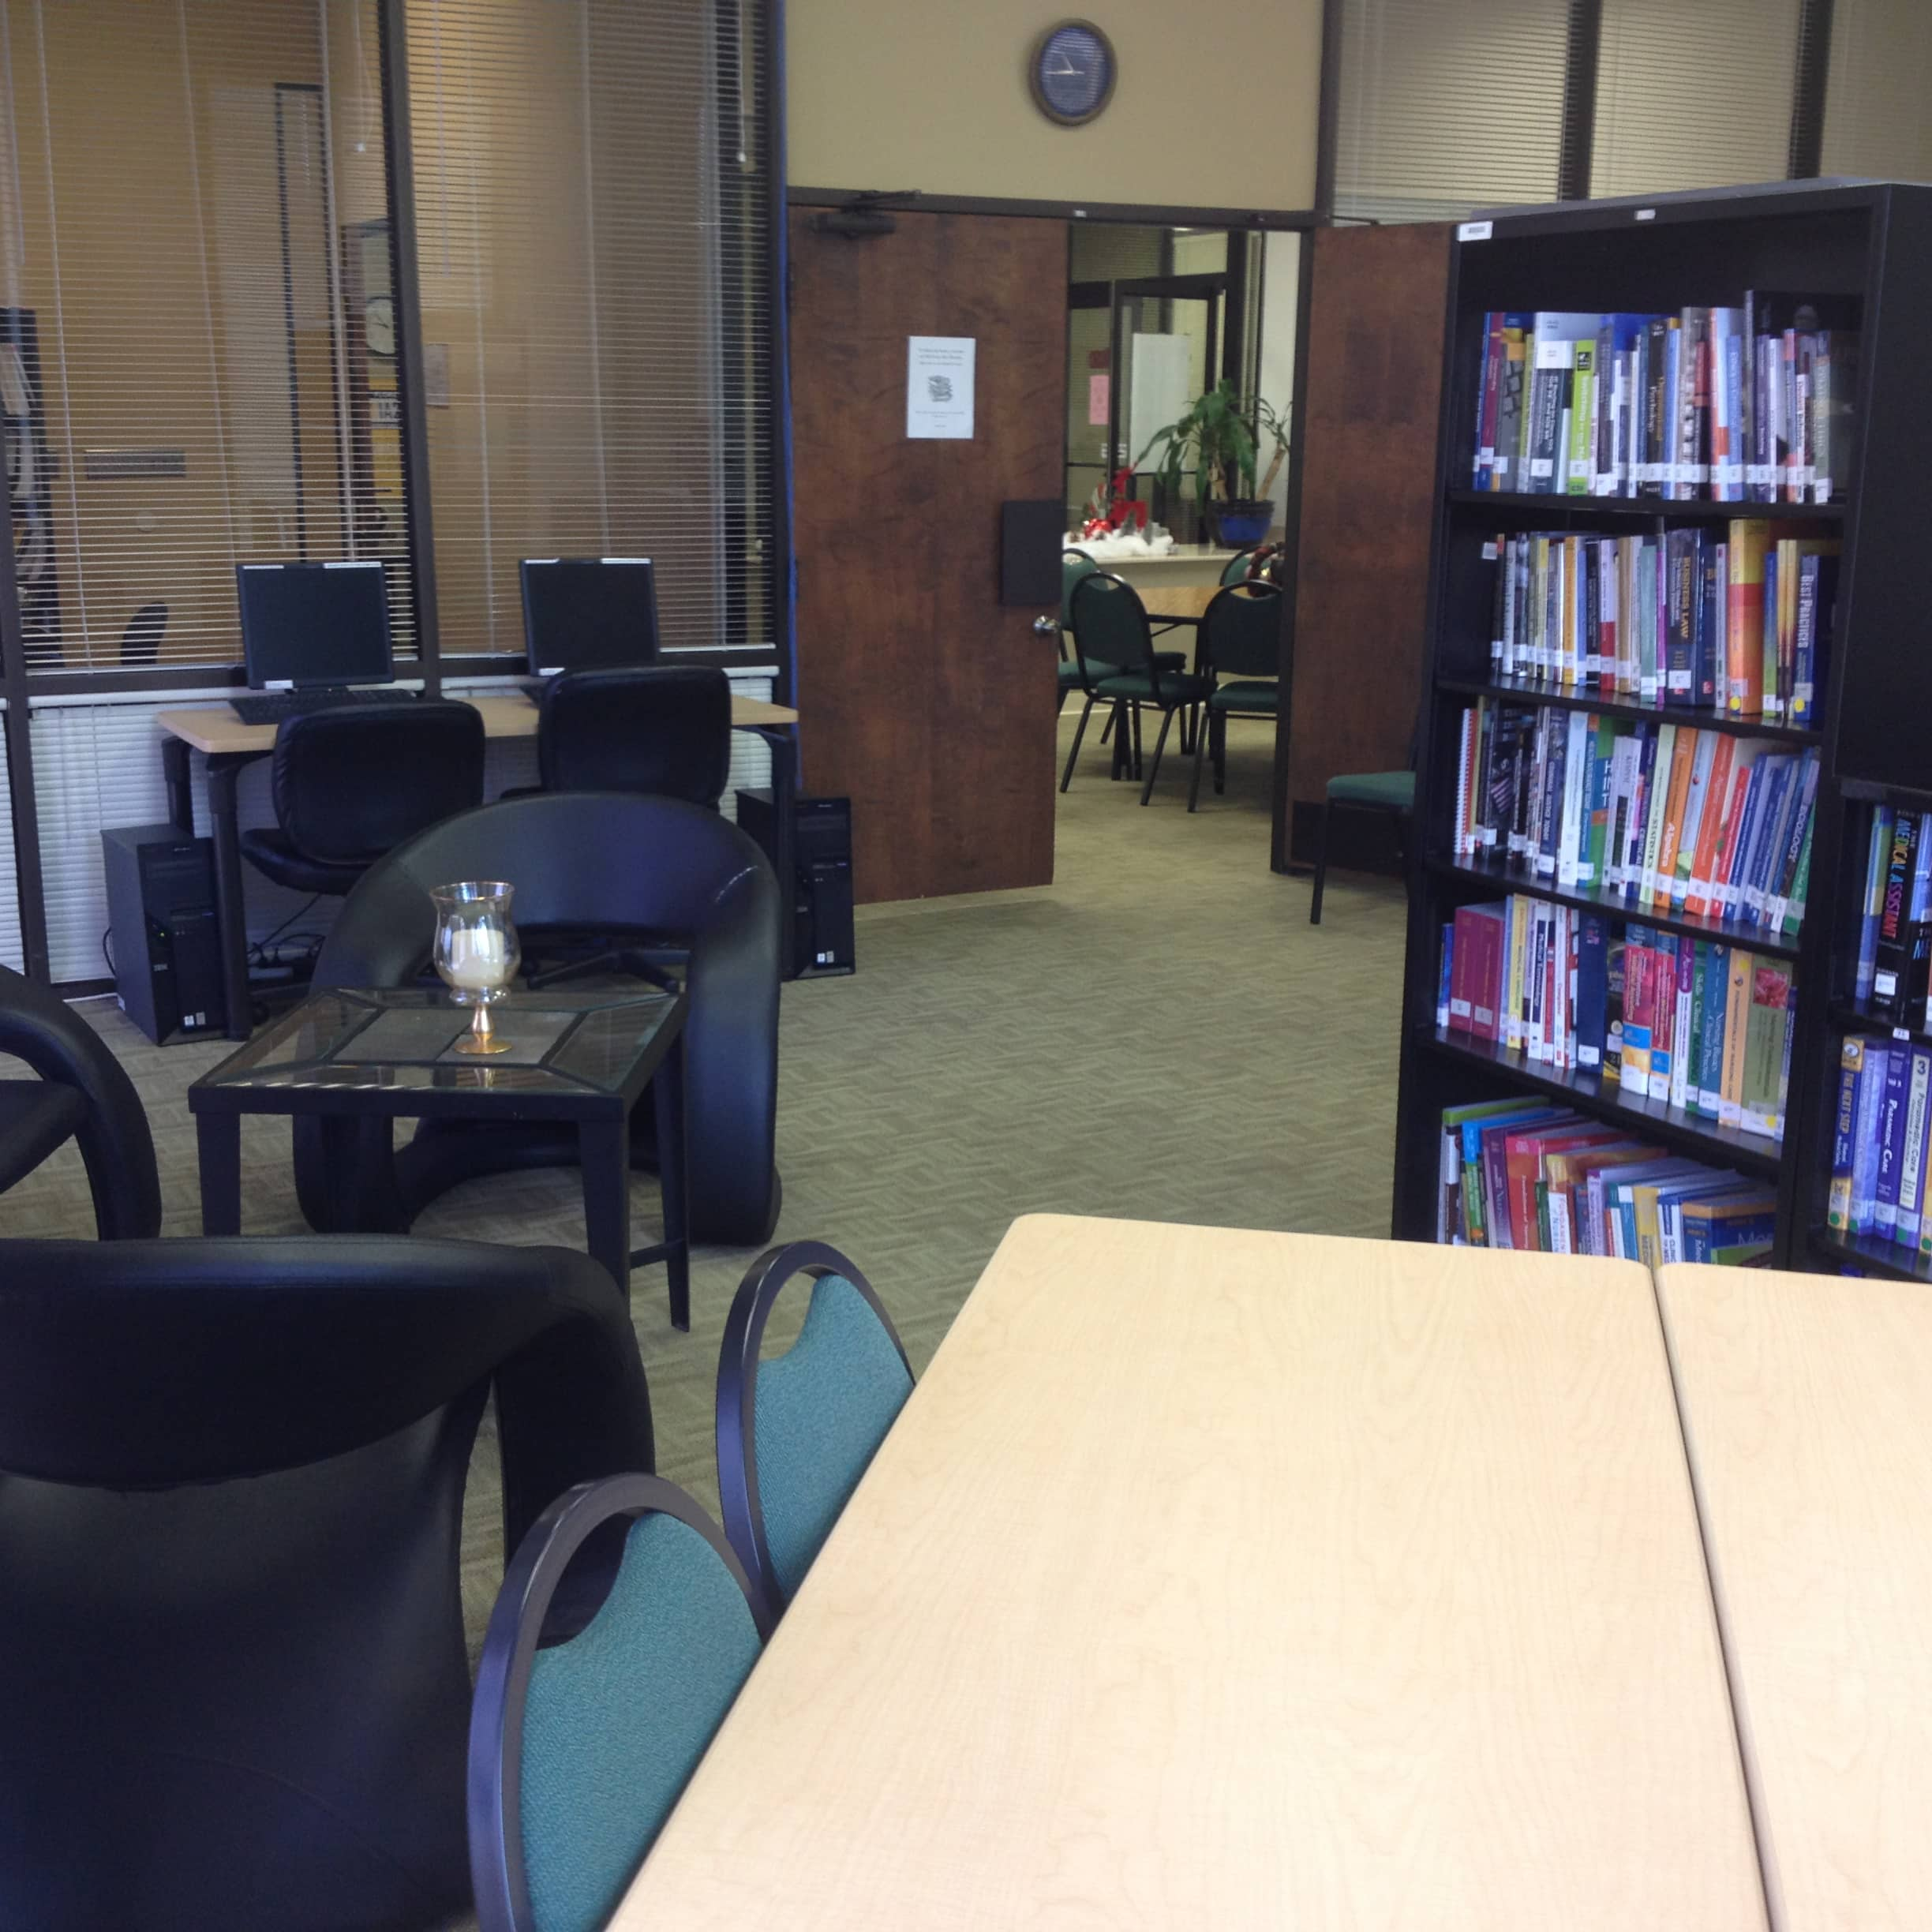 New Study Places in New Port Richey